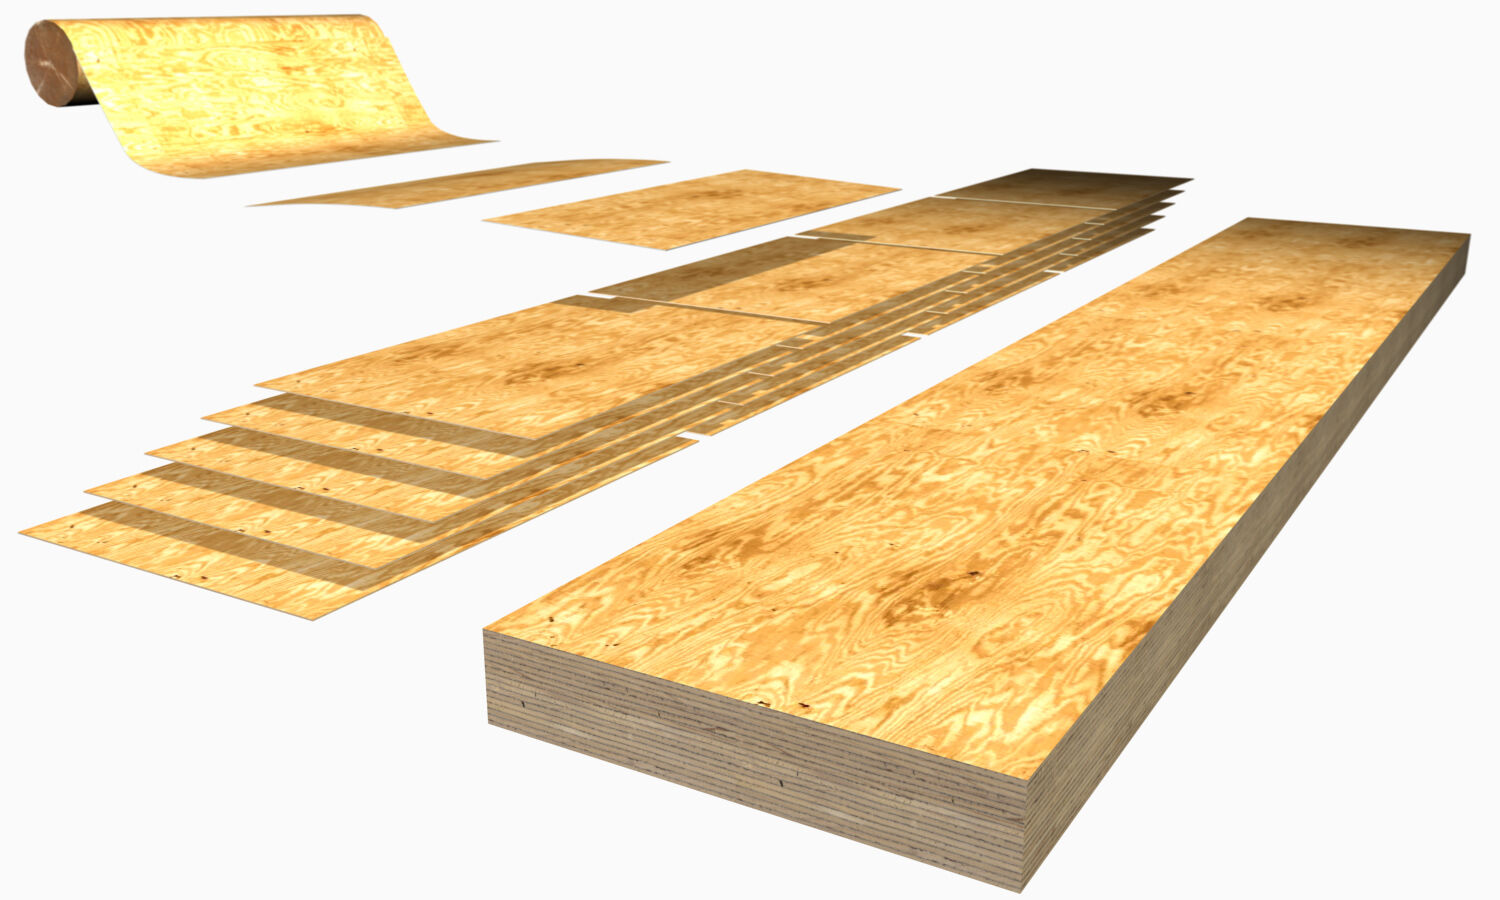 LVL, or Laminated Veneer Lumber, is a dimensionally very stable and straight wood product constructed from veneer sheets that have been glued together.